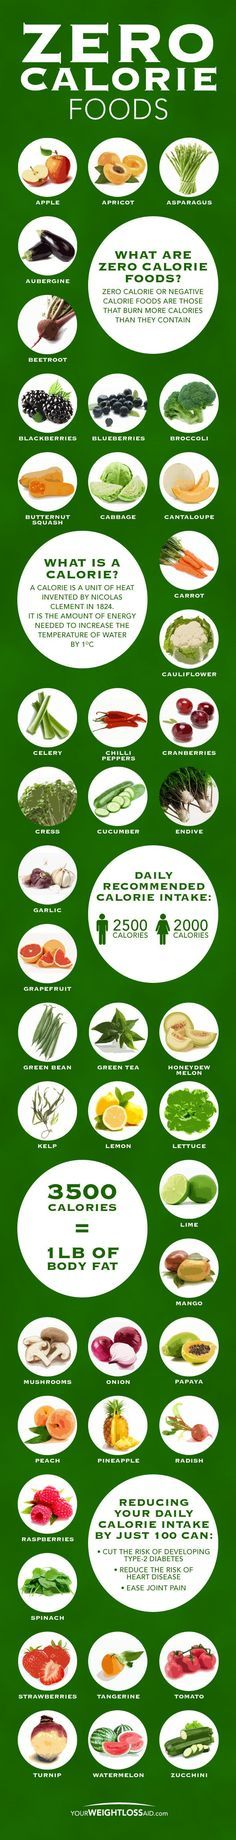 Zero calorie foods are those that burn more calories than they contain. This infographic breaks them down.